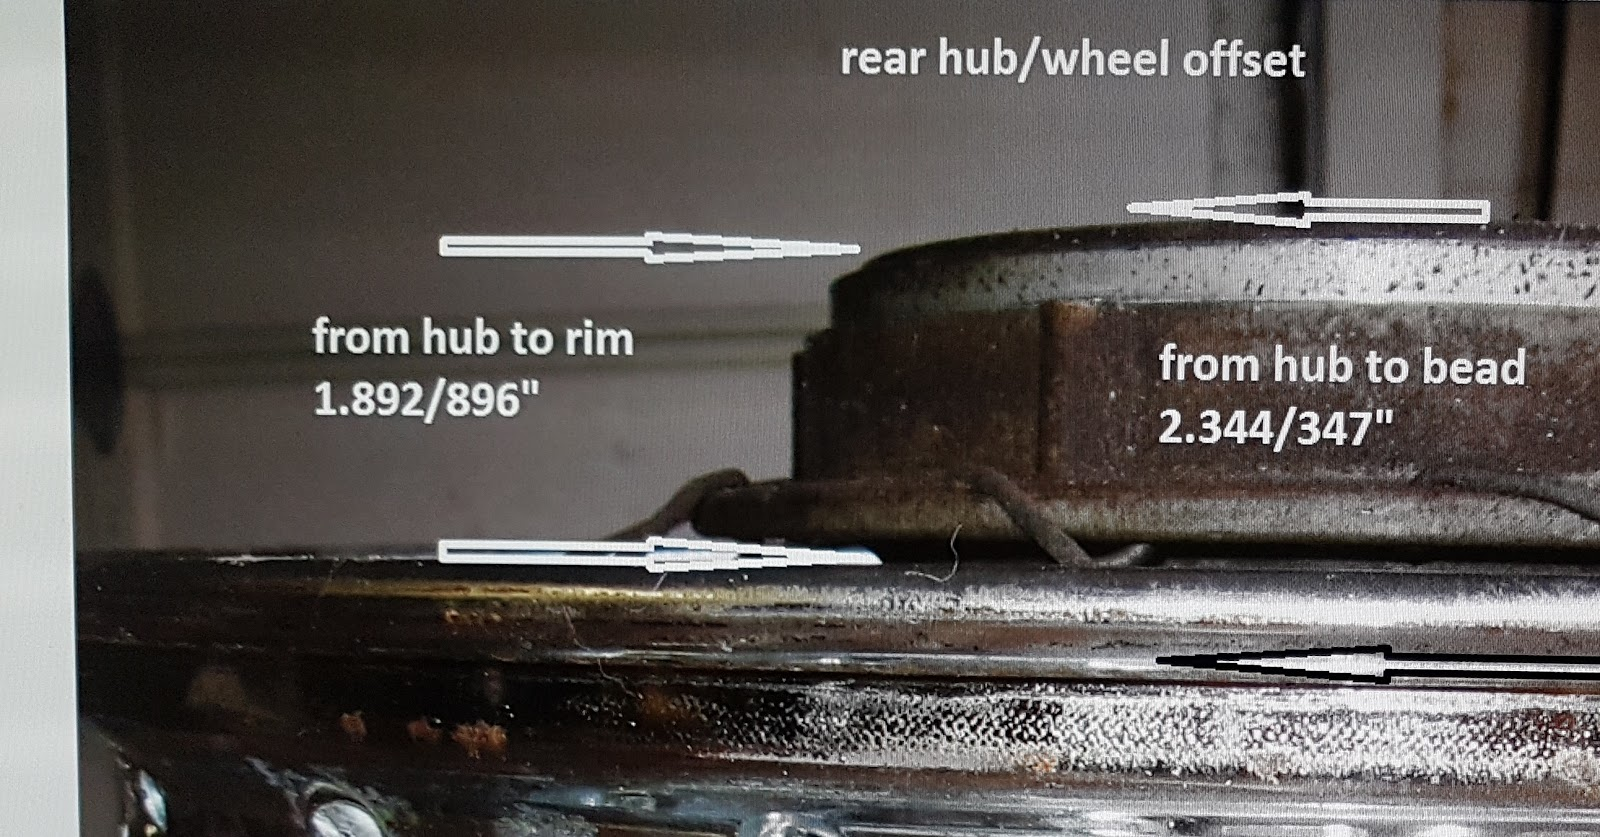 Another wheel offset example.